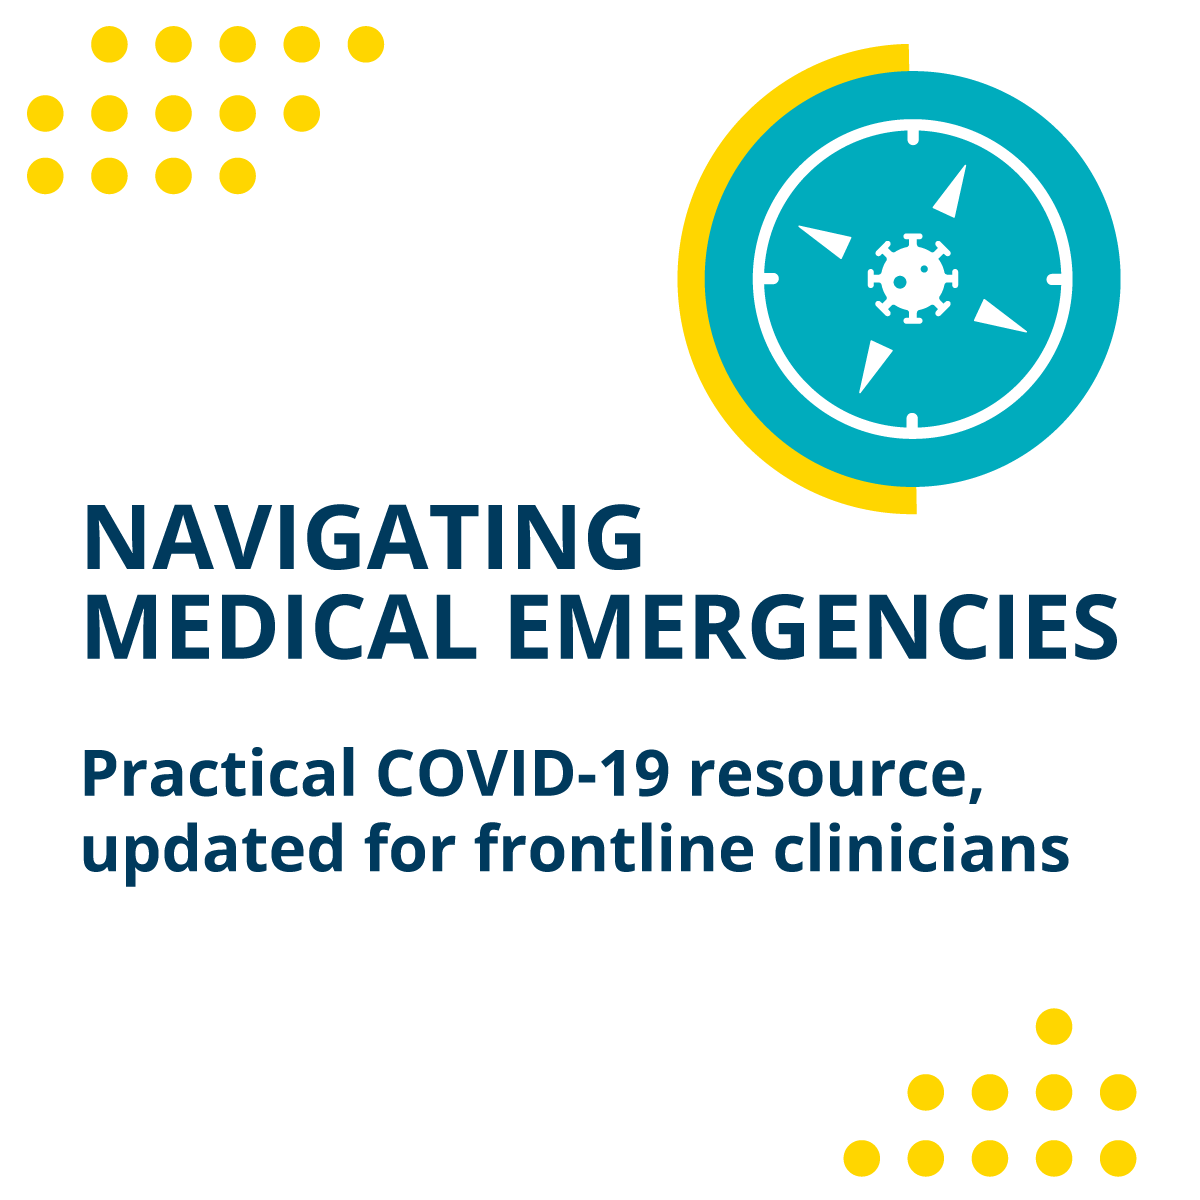 Navigating Medical Emergencies (NavME), practical resource updated for frontline clinicians.